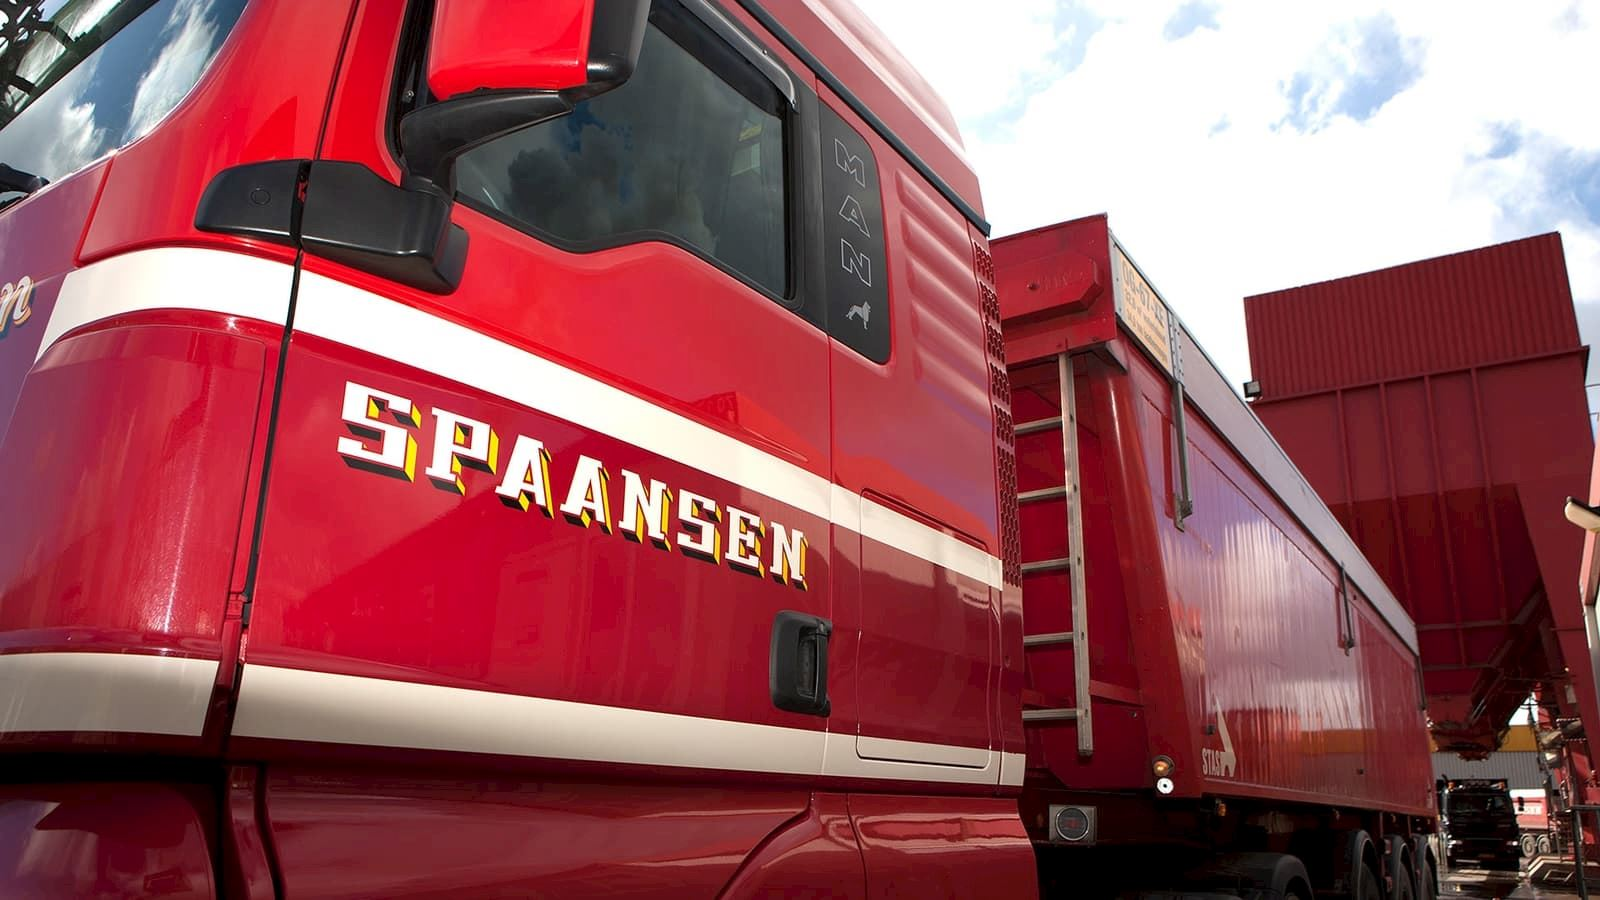 spaansen-grondstoffen-logistiek-trailertransport